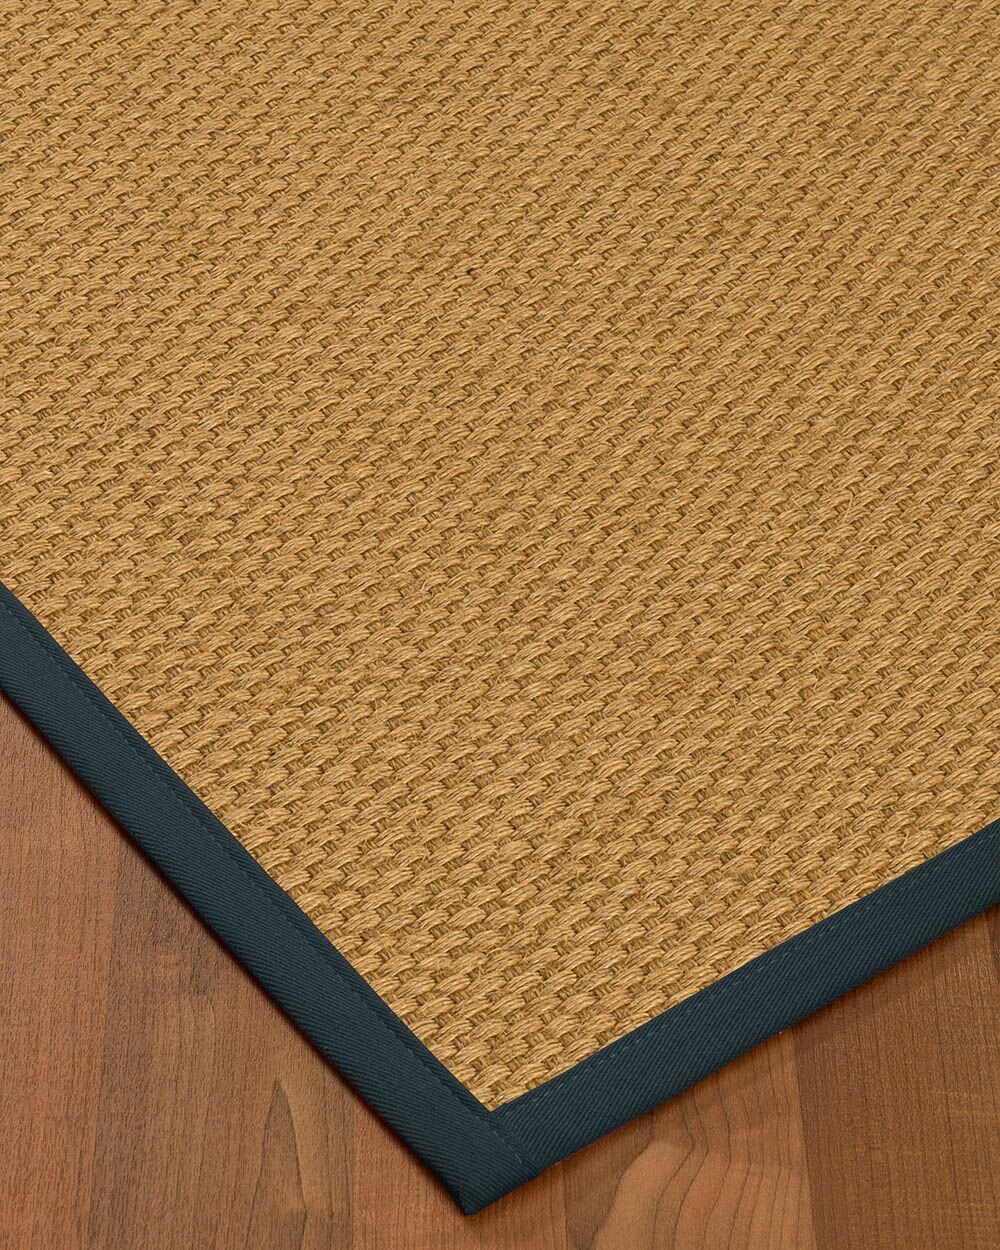 Kimpel Hand-Woven Beige Area Rug Rug Size: Rectangle 8' x 10'